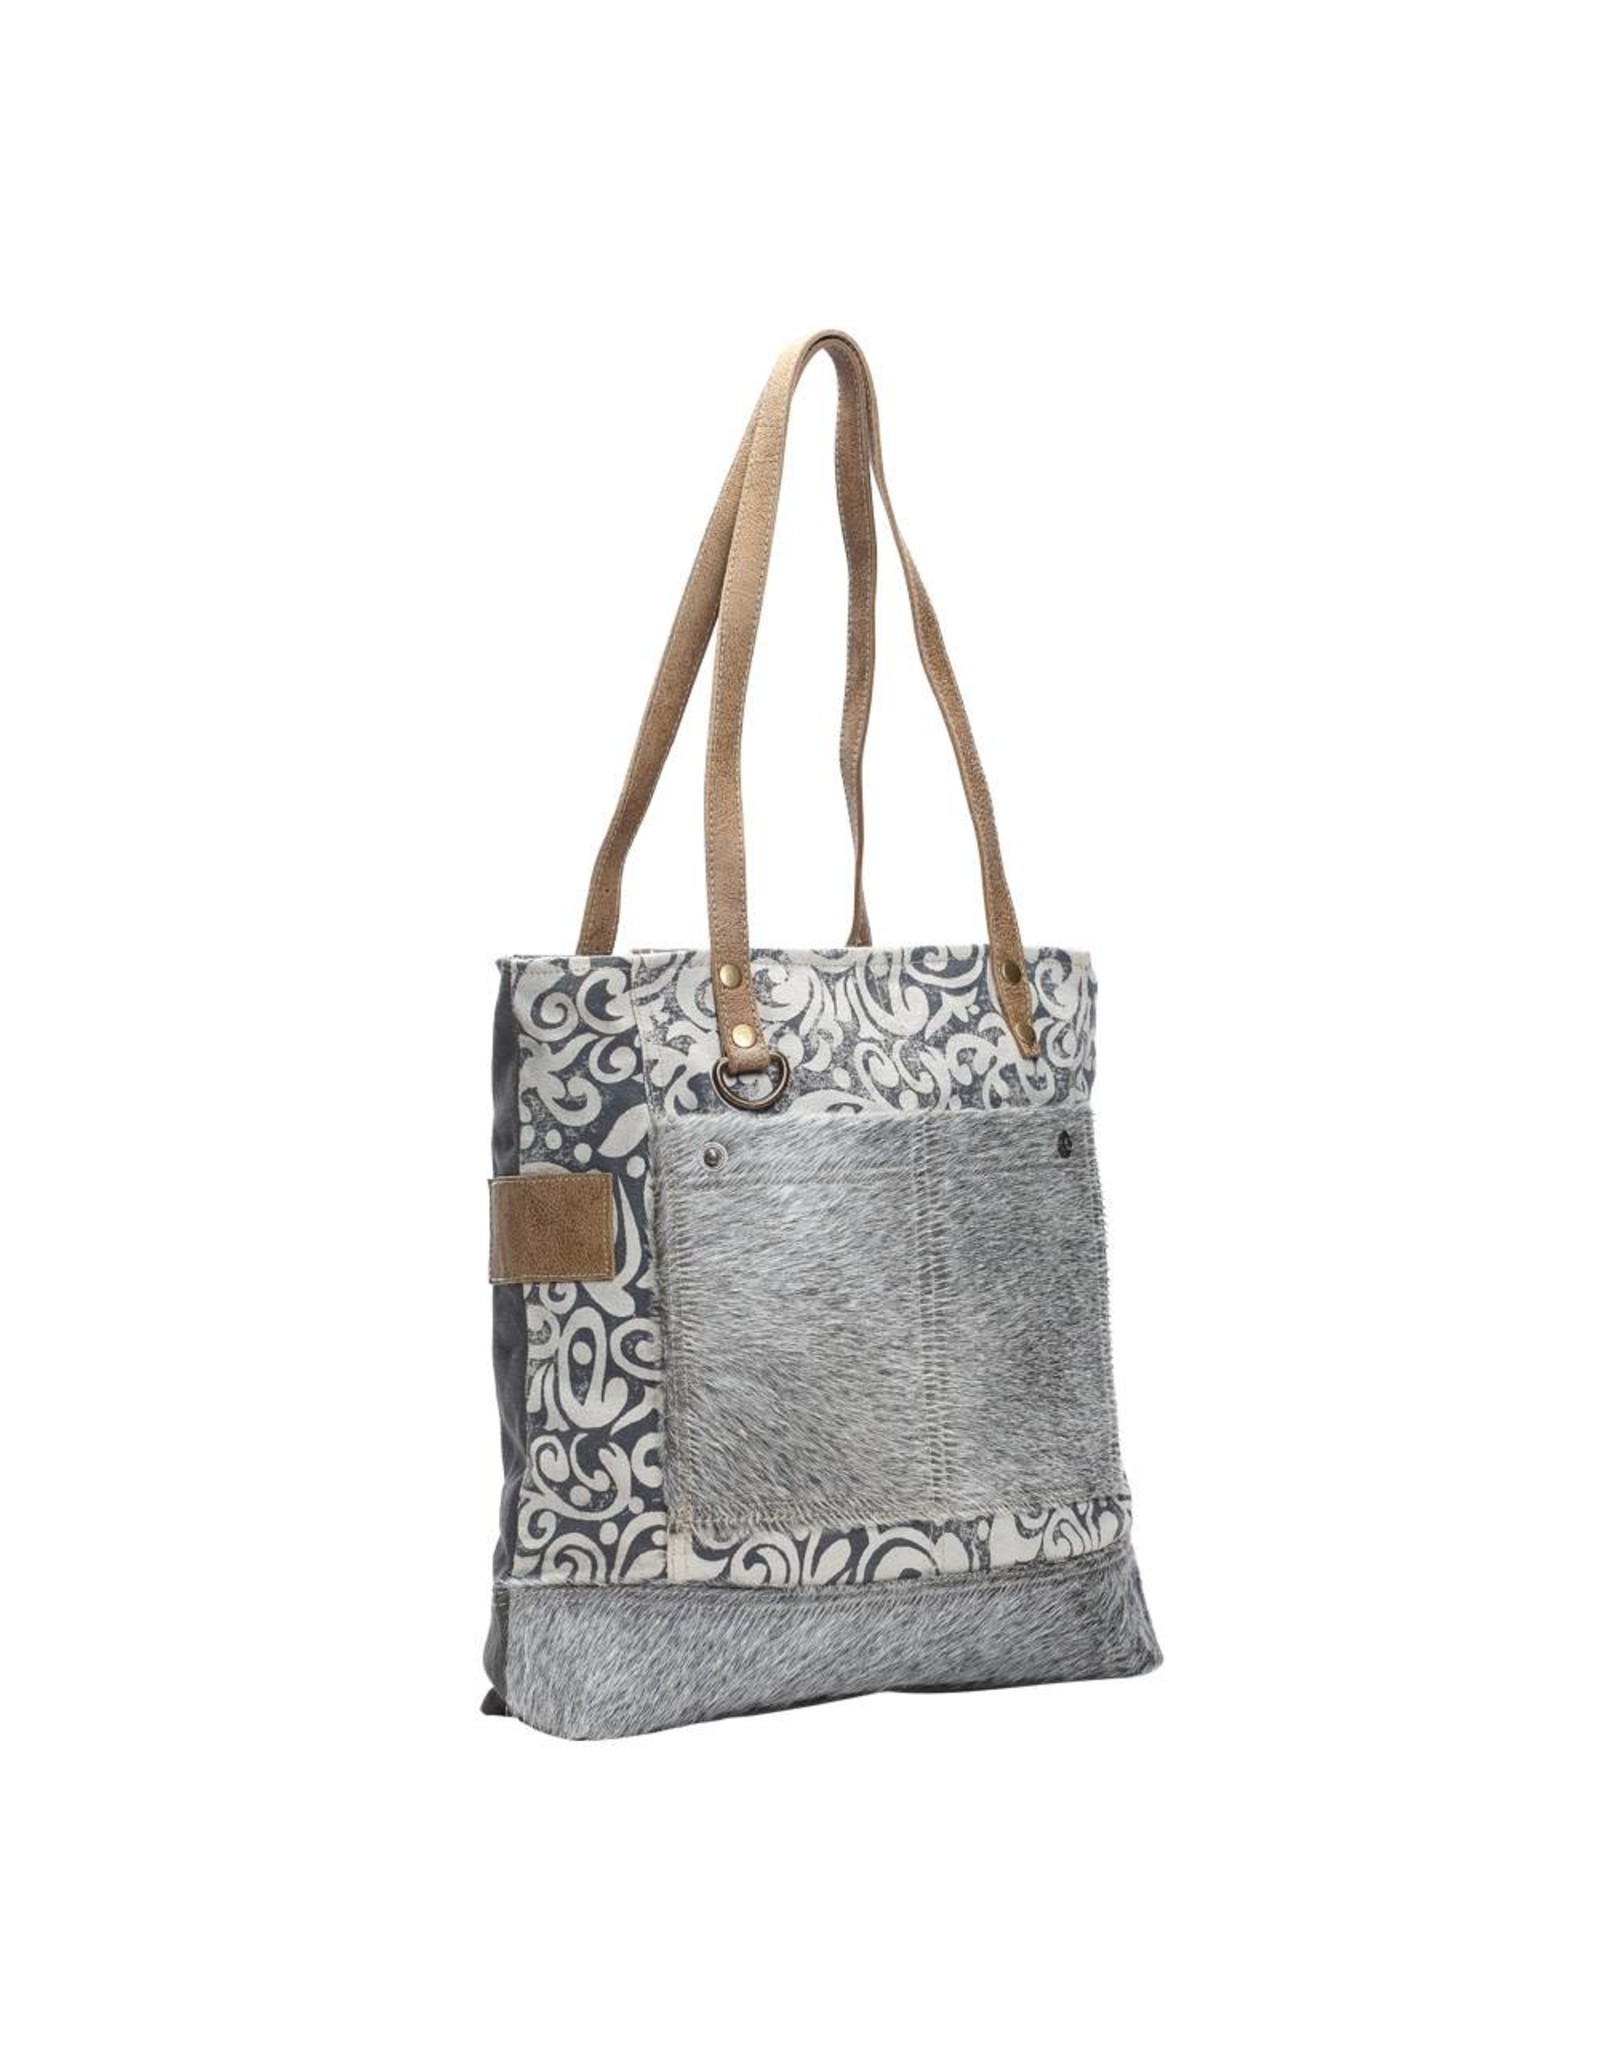 Myra Bags S-1139 Hairon Pockets Tote